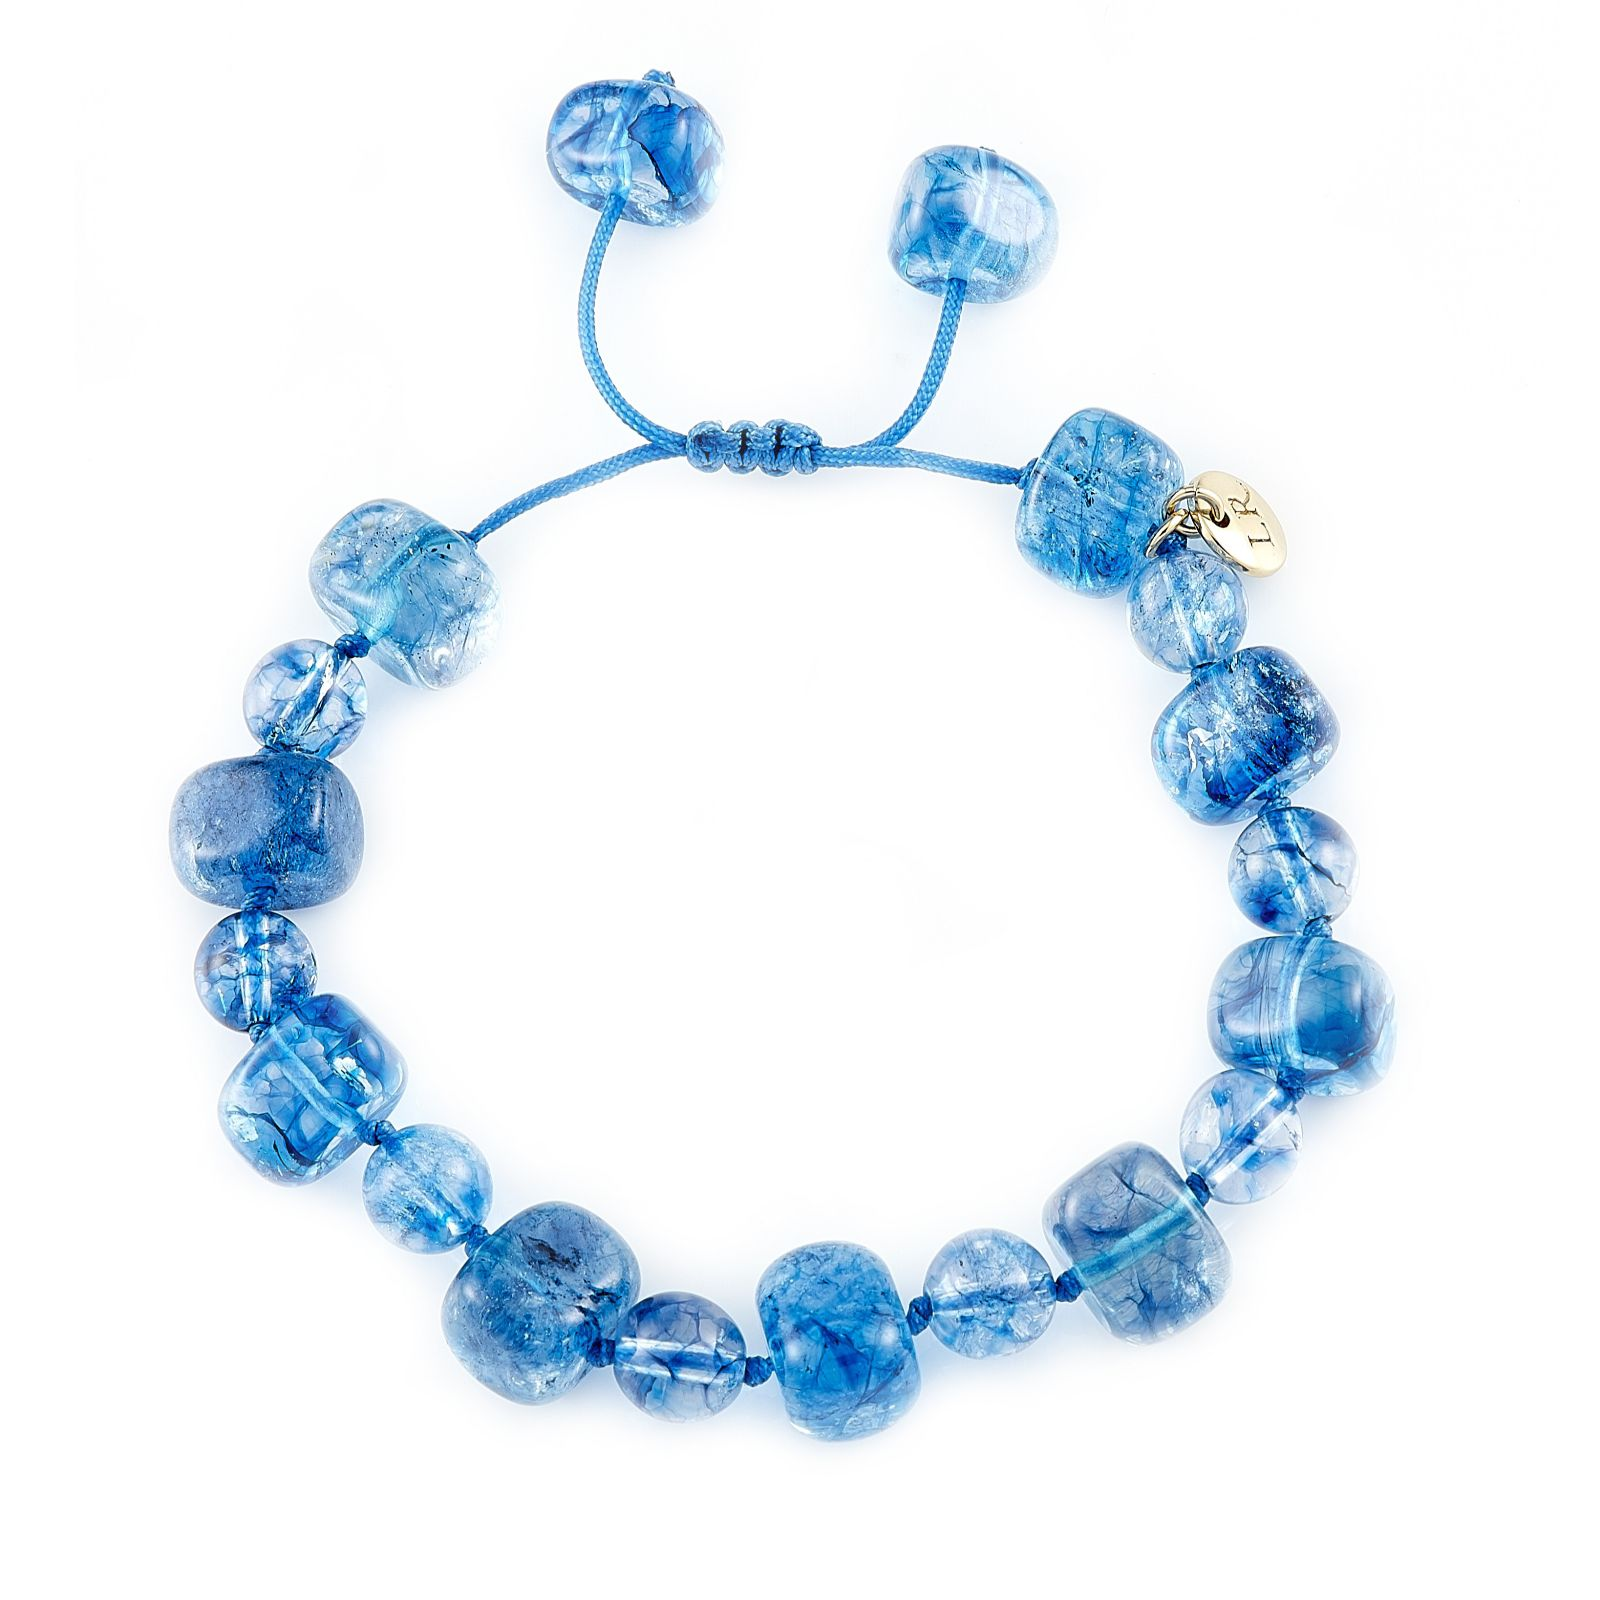 launches to blue partner lokai day edition dye bracelet silicone and color fortune world limited meanings caymancode silb tie water bracelets charity celebrate support